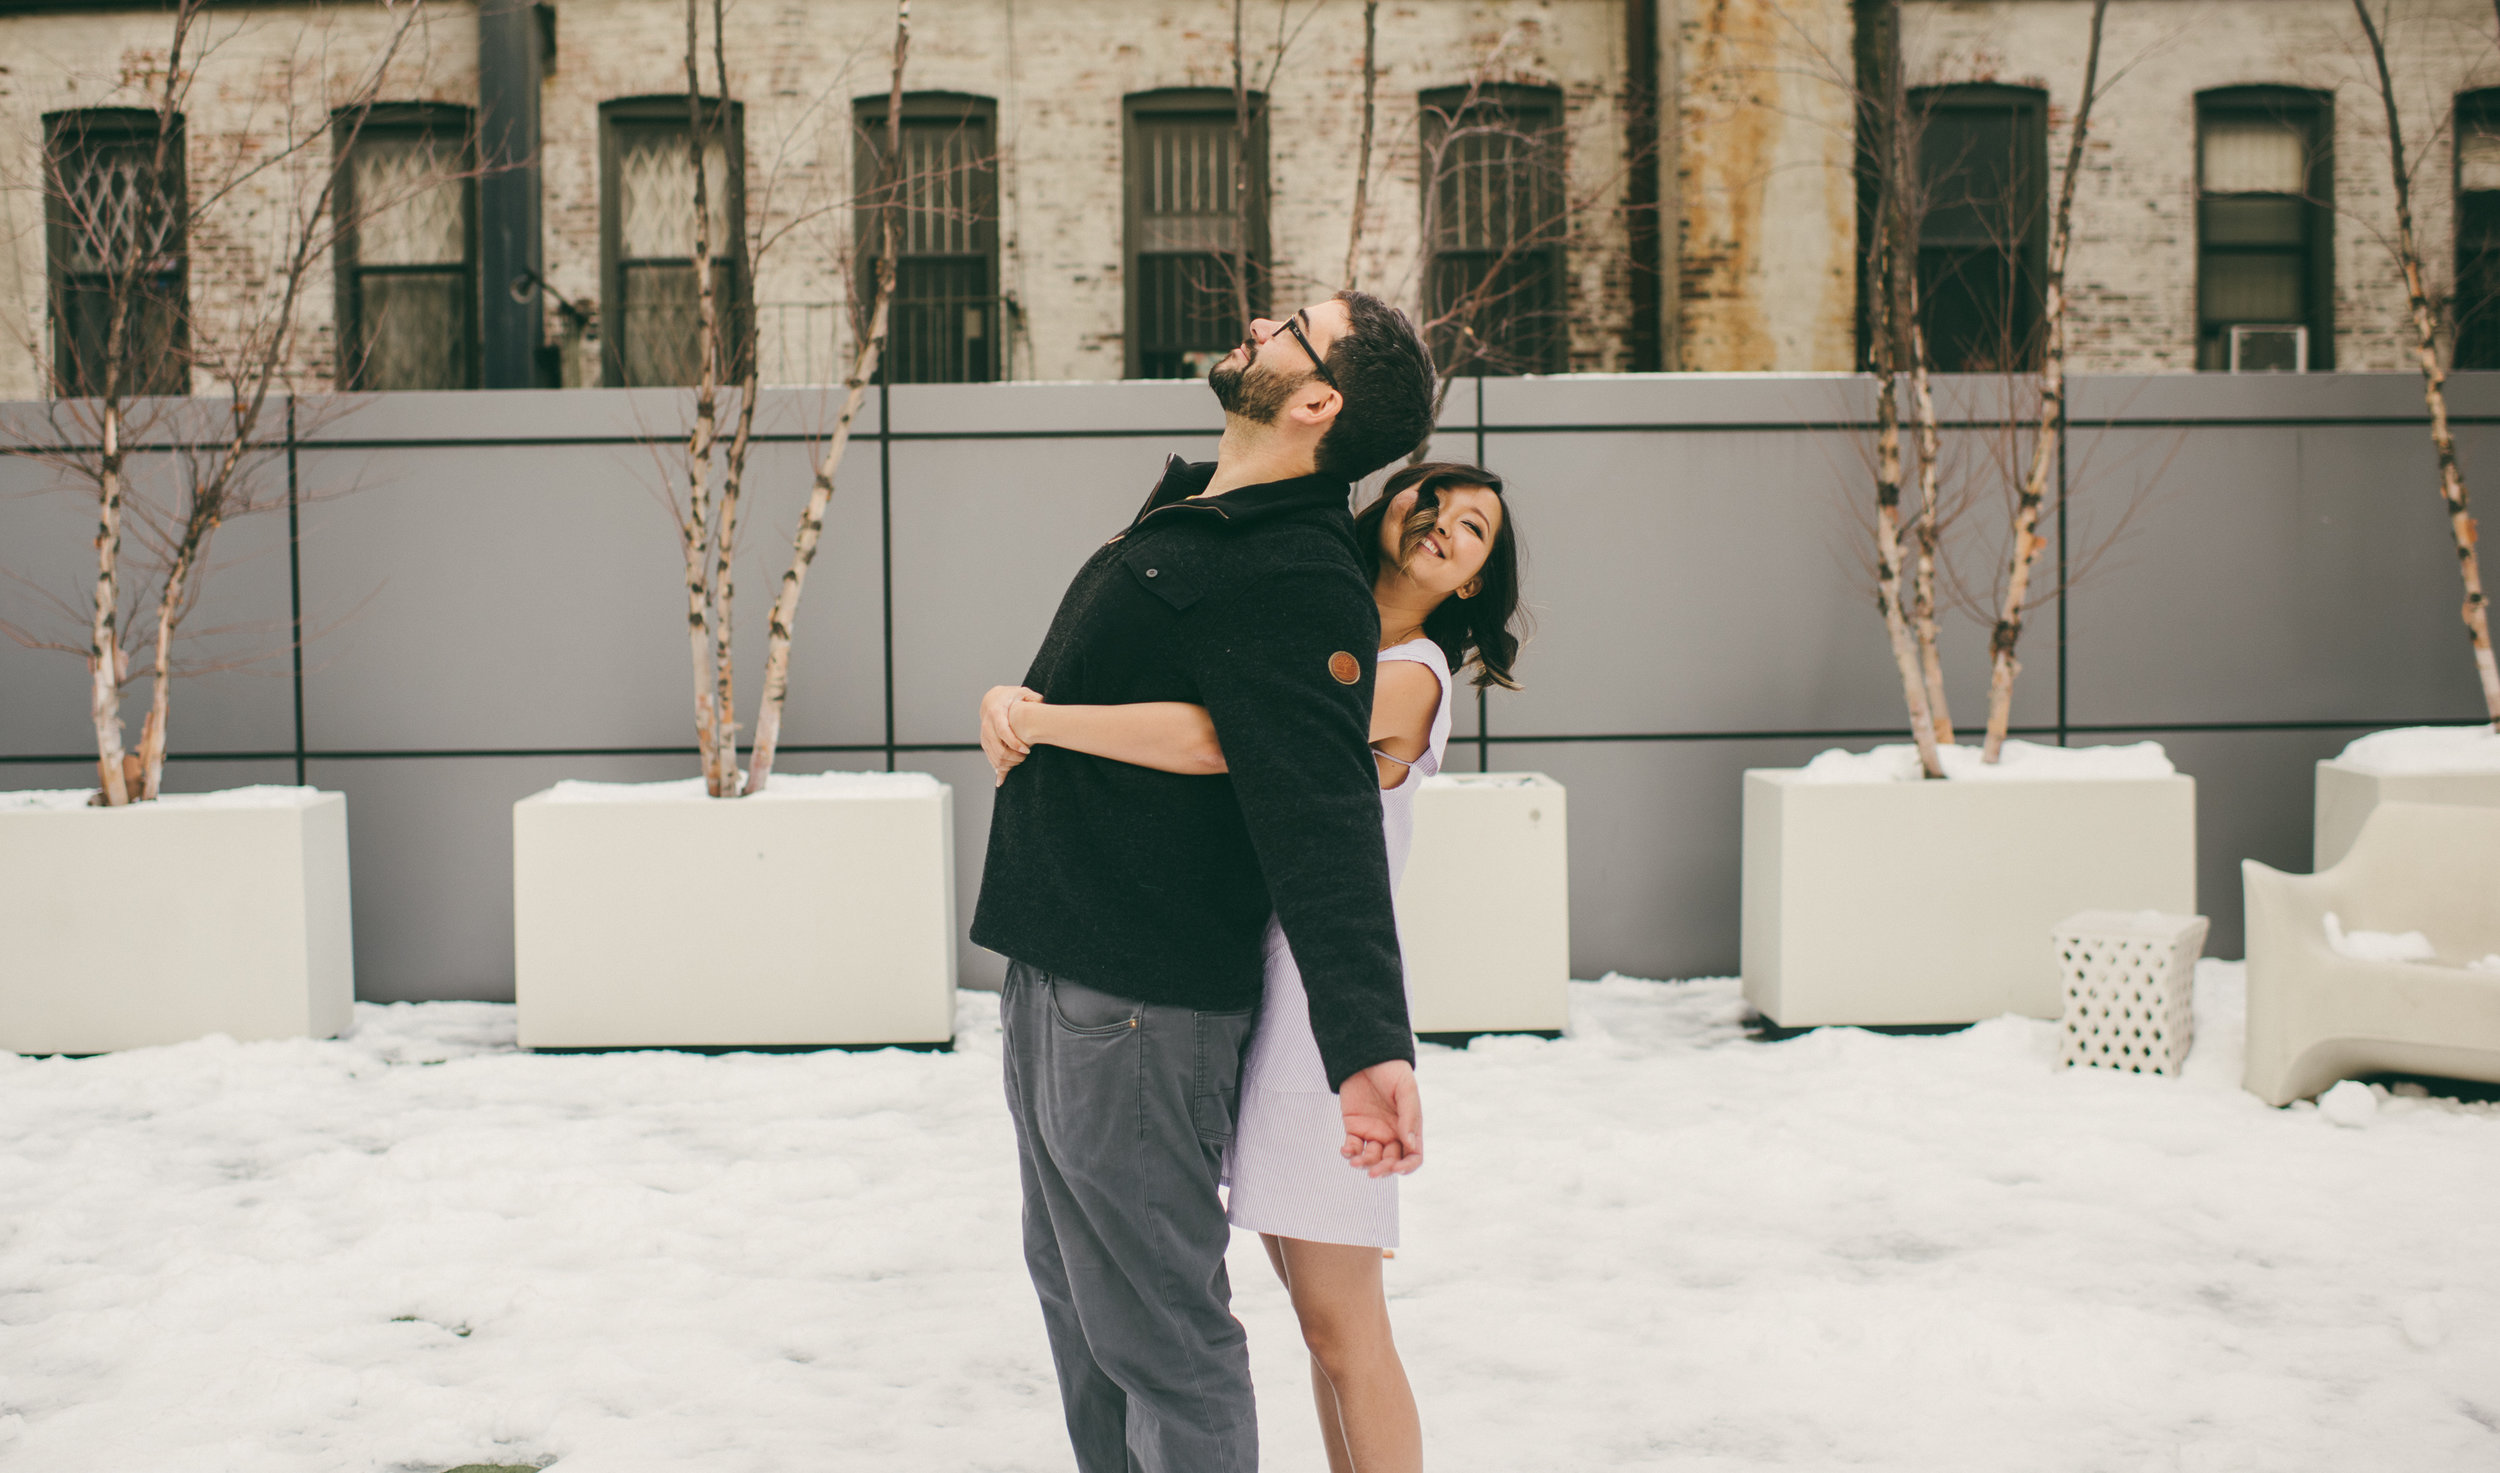 LILY & ANDREW - ENGAGED - TWOTWENTY by CHI-CHI AGBIM-96.jpg